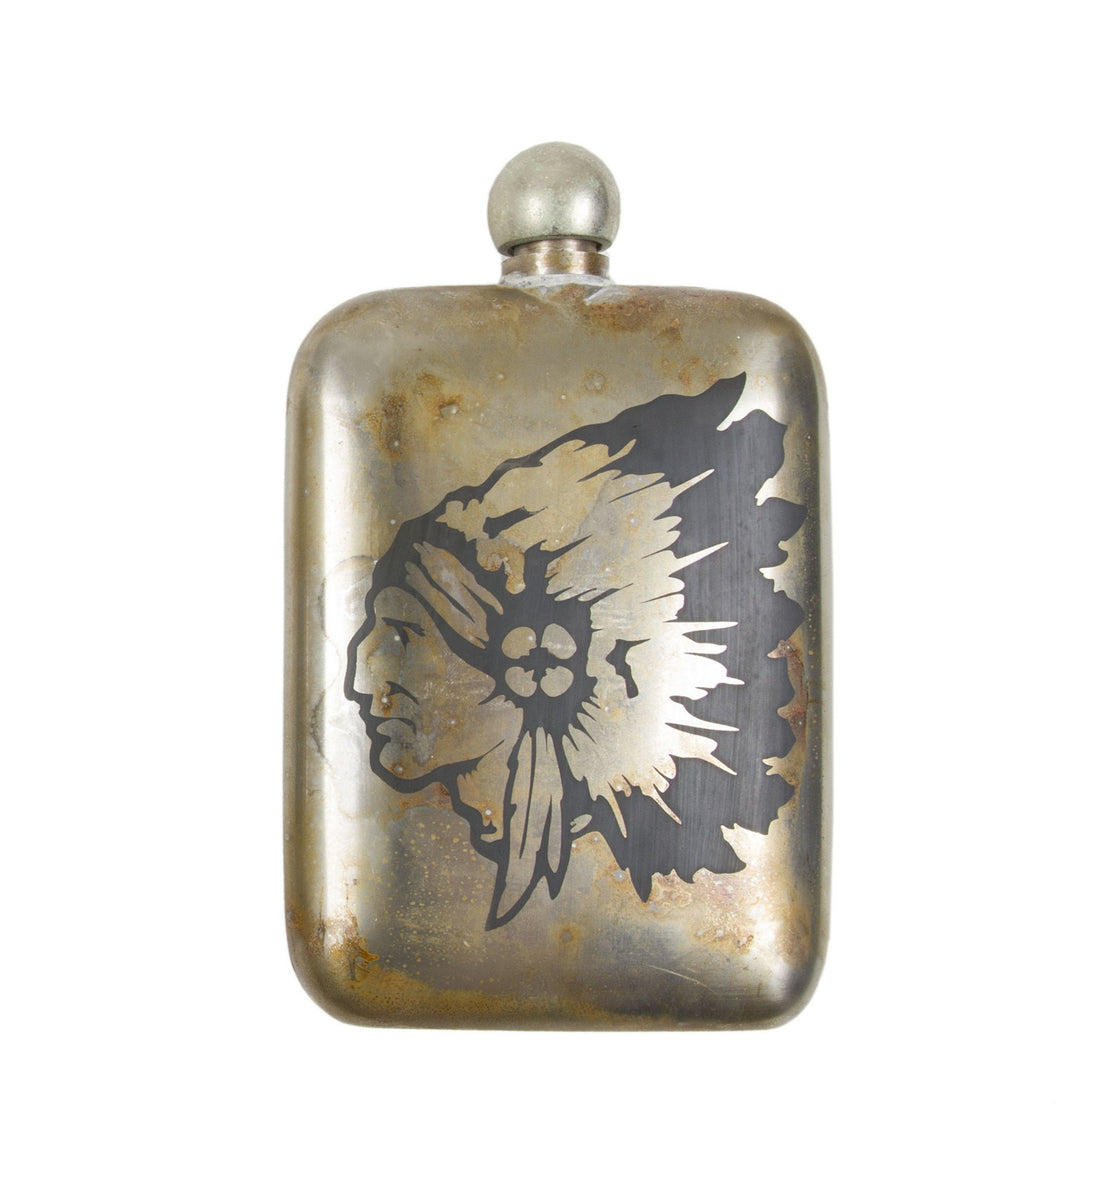 The Chieftain Noble Flask - Houseware: Flasks - Iron and Resin